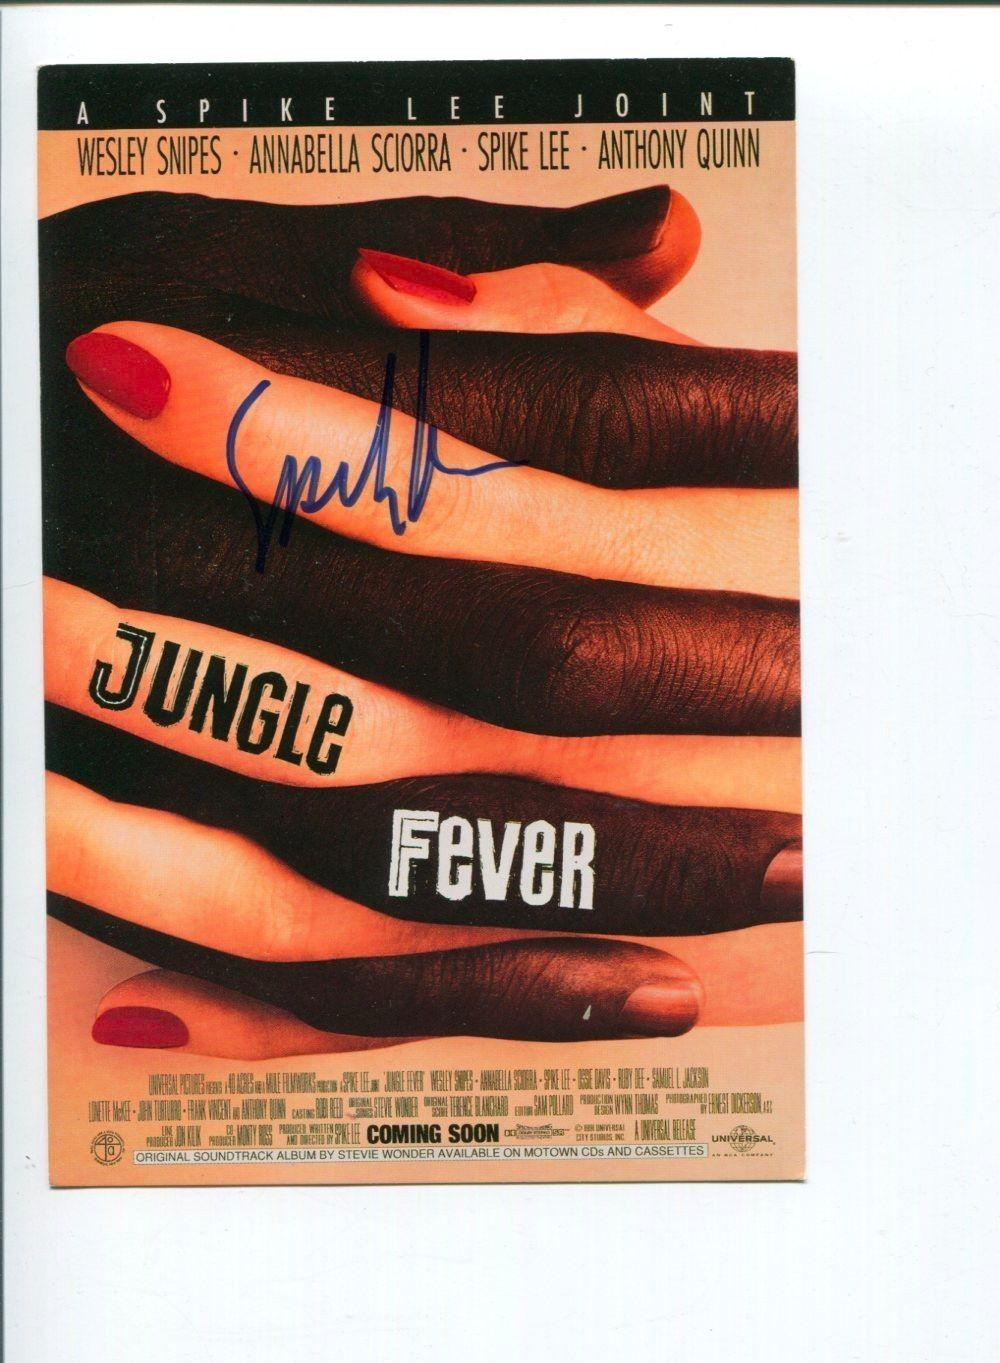 a sociological critique of jungle fever by spike lee